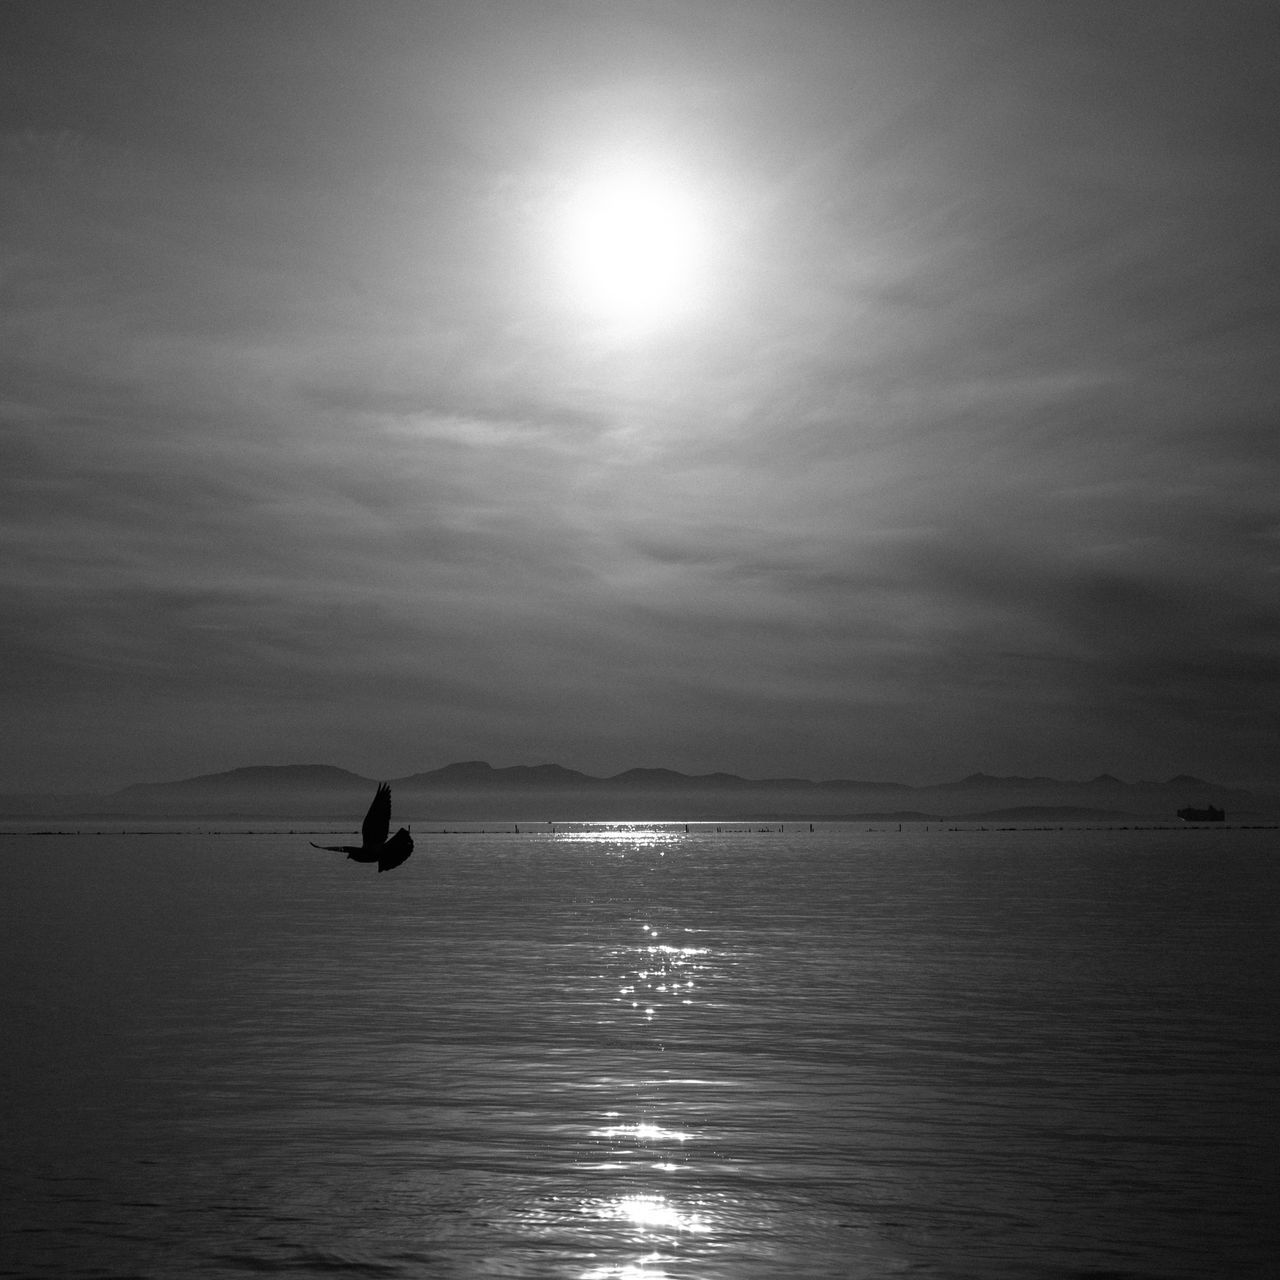 Beauty In Nature Day Horizon Over Water Landscape Mountain Nature Nautical Vessel No People Outdoors Scenics Sea Silhouette Sky Sun Tranquil Scene Tranquility Water Waterfront